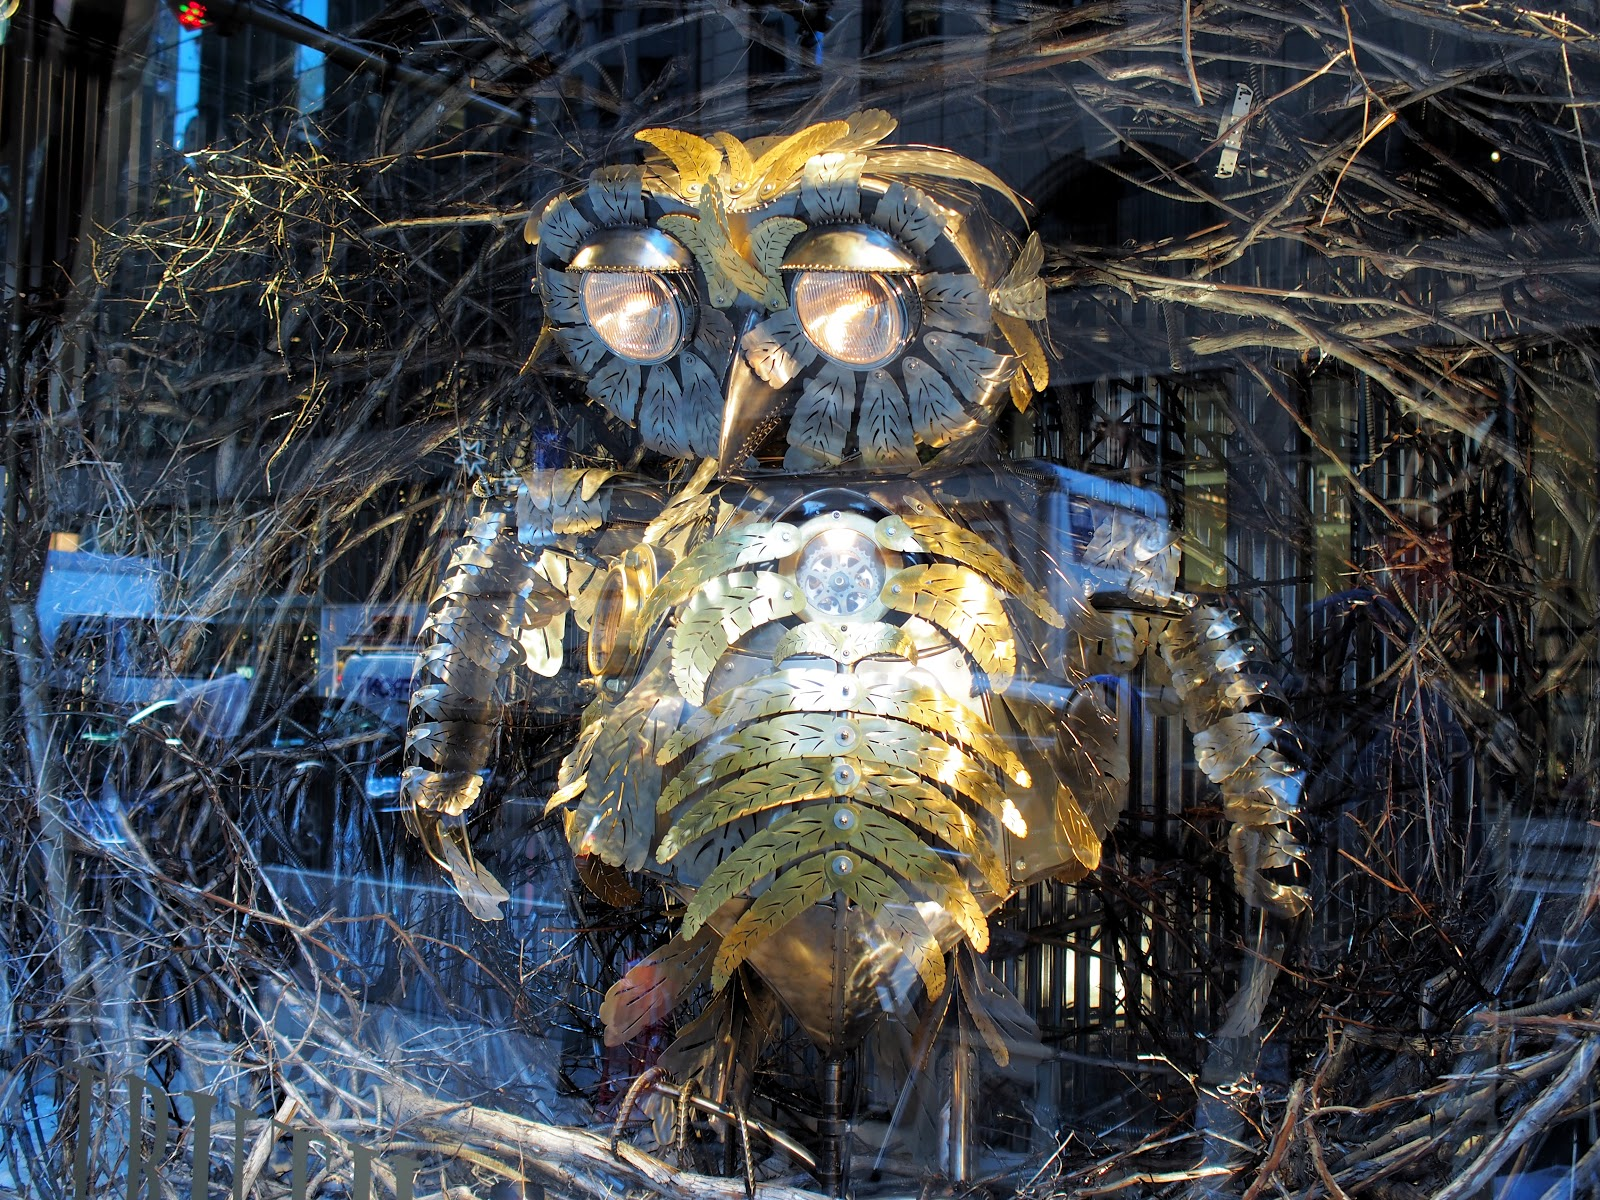 Holiday Owl #HolidayOwl #barneys #holidaysinNYC #BazLuhrmann #besttimeoftheyear #celebrate ©2014 Nancy Lundebjerg